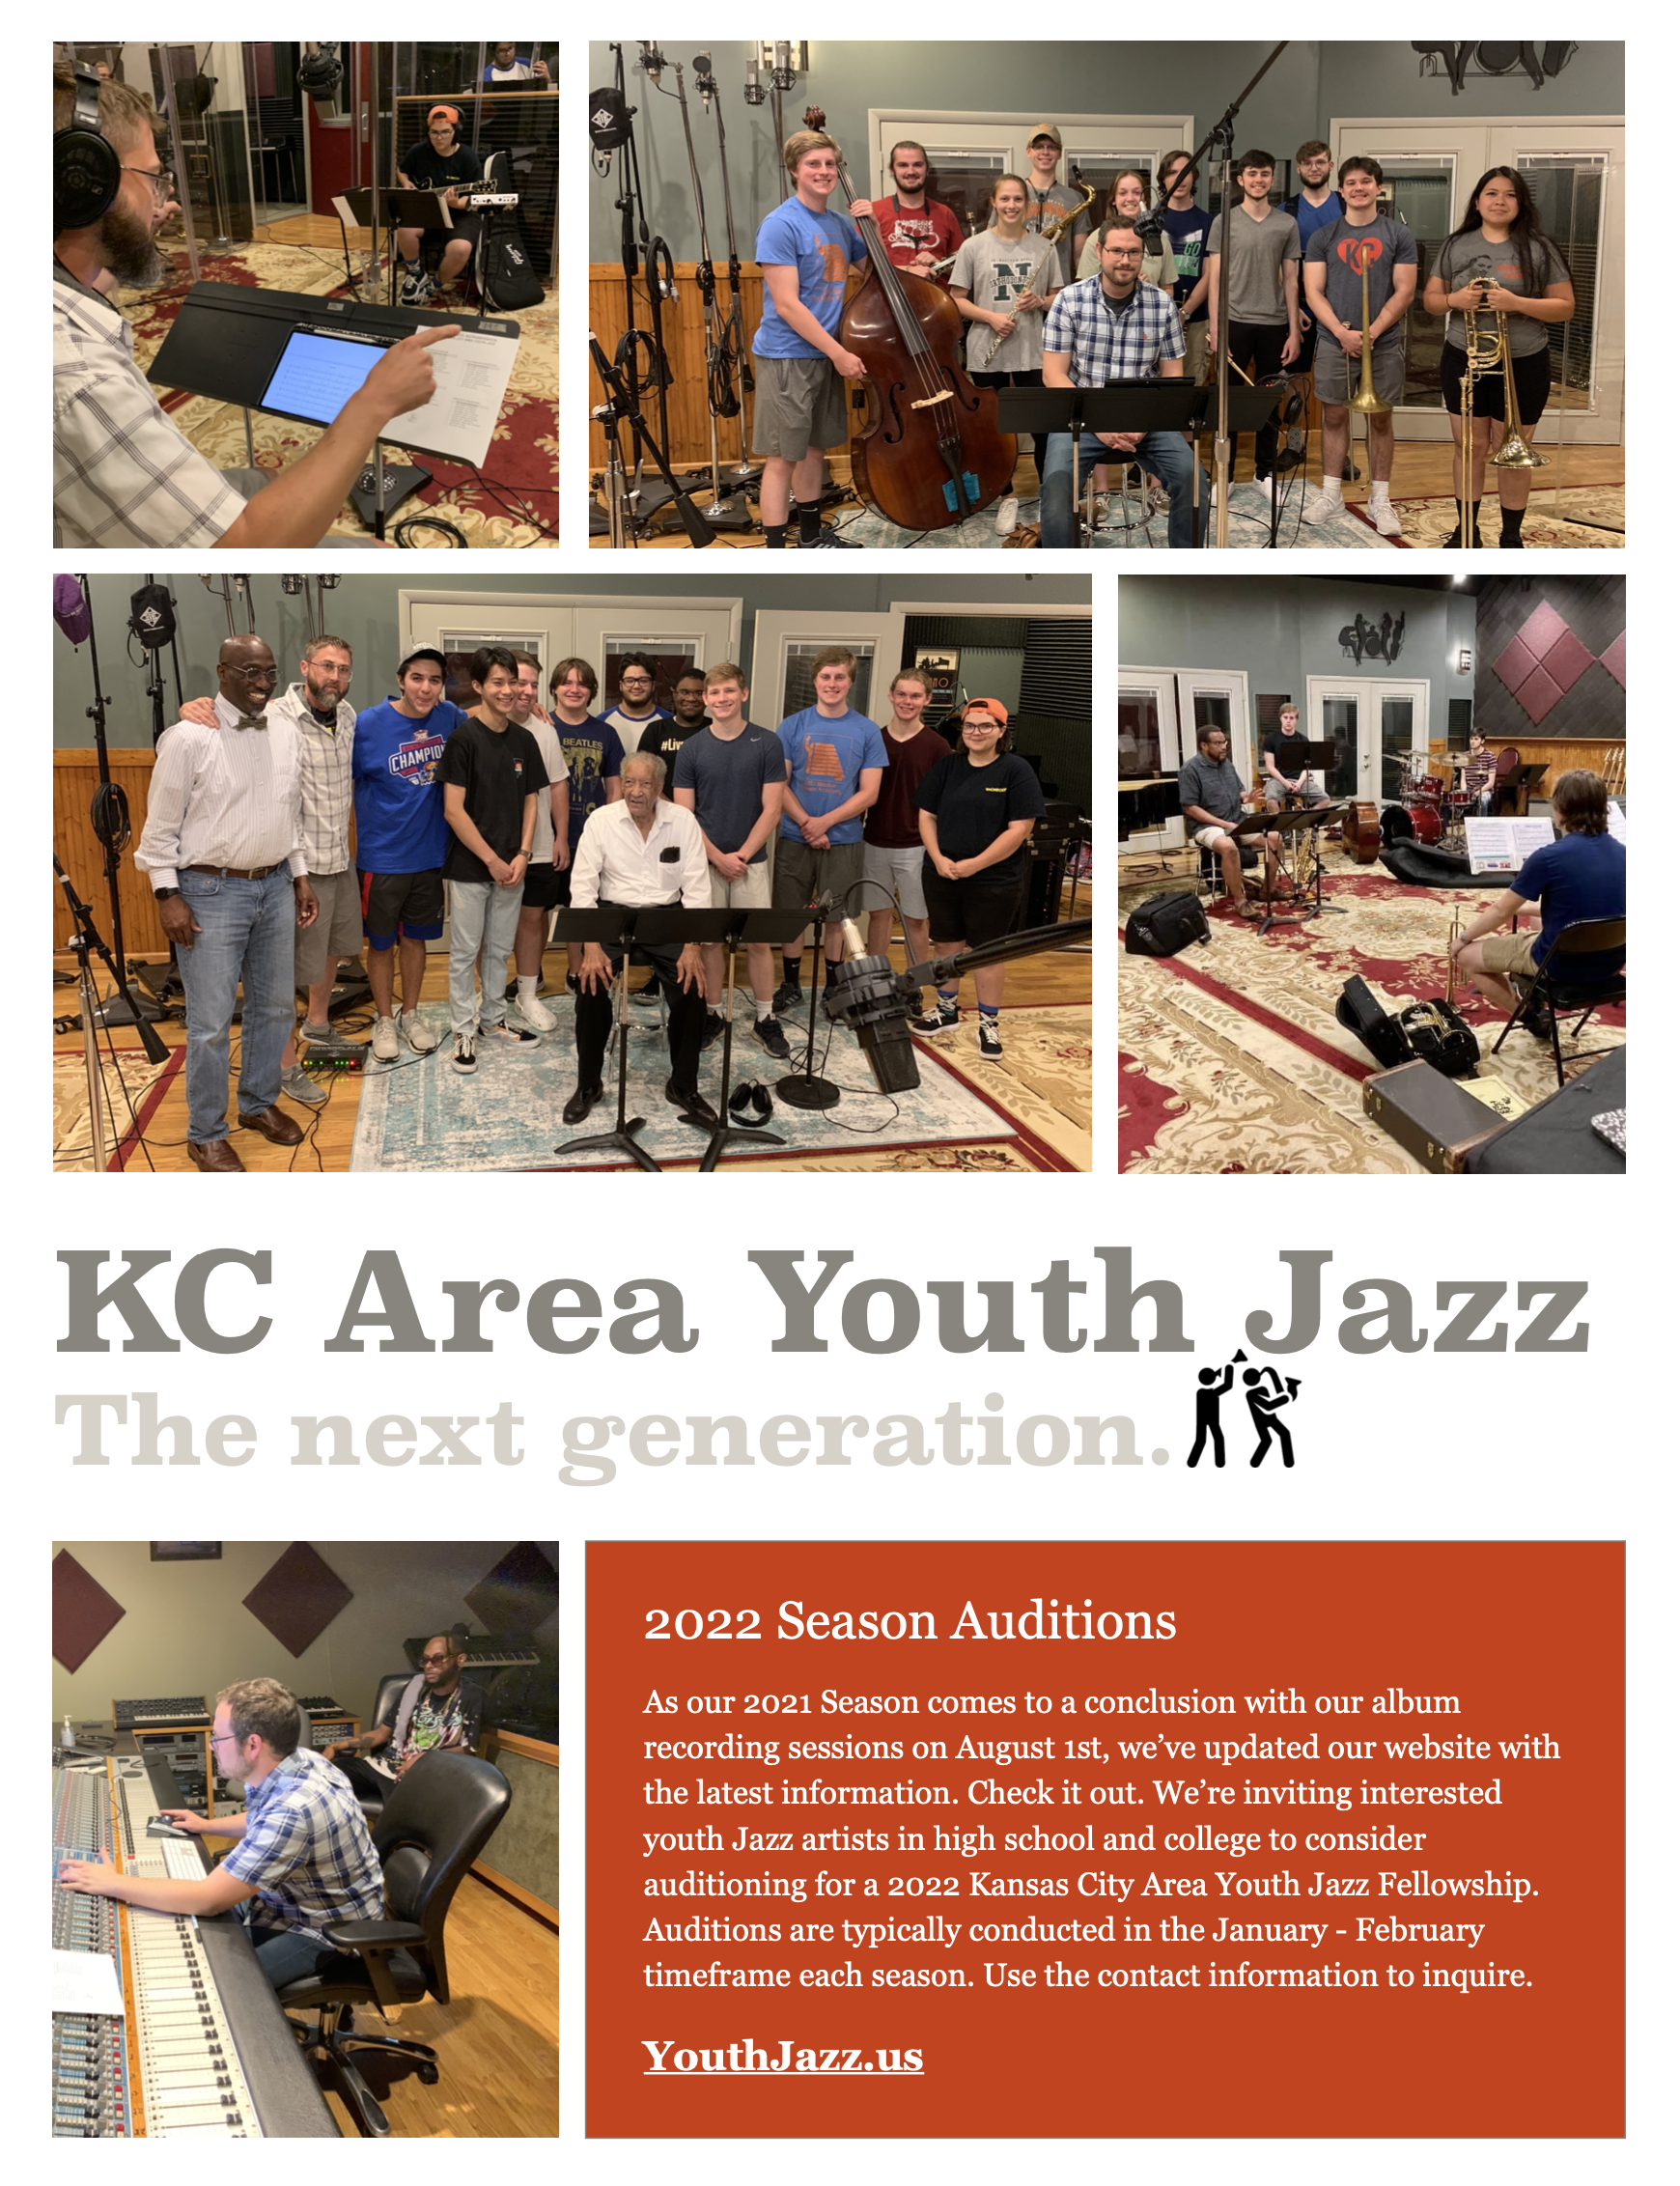 2022 KCAYJ AUDITIONS